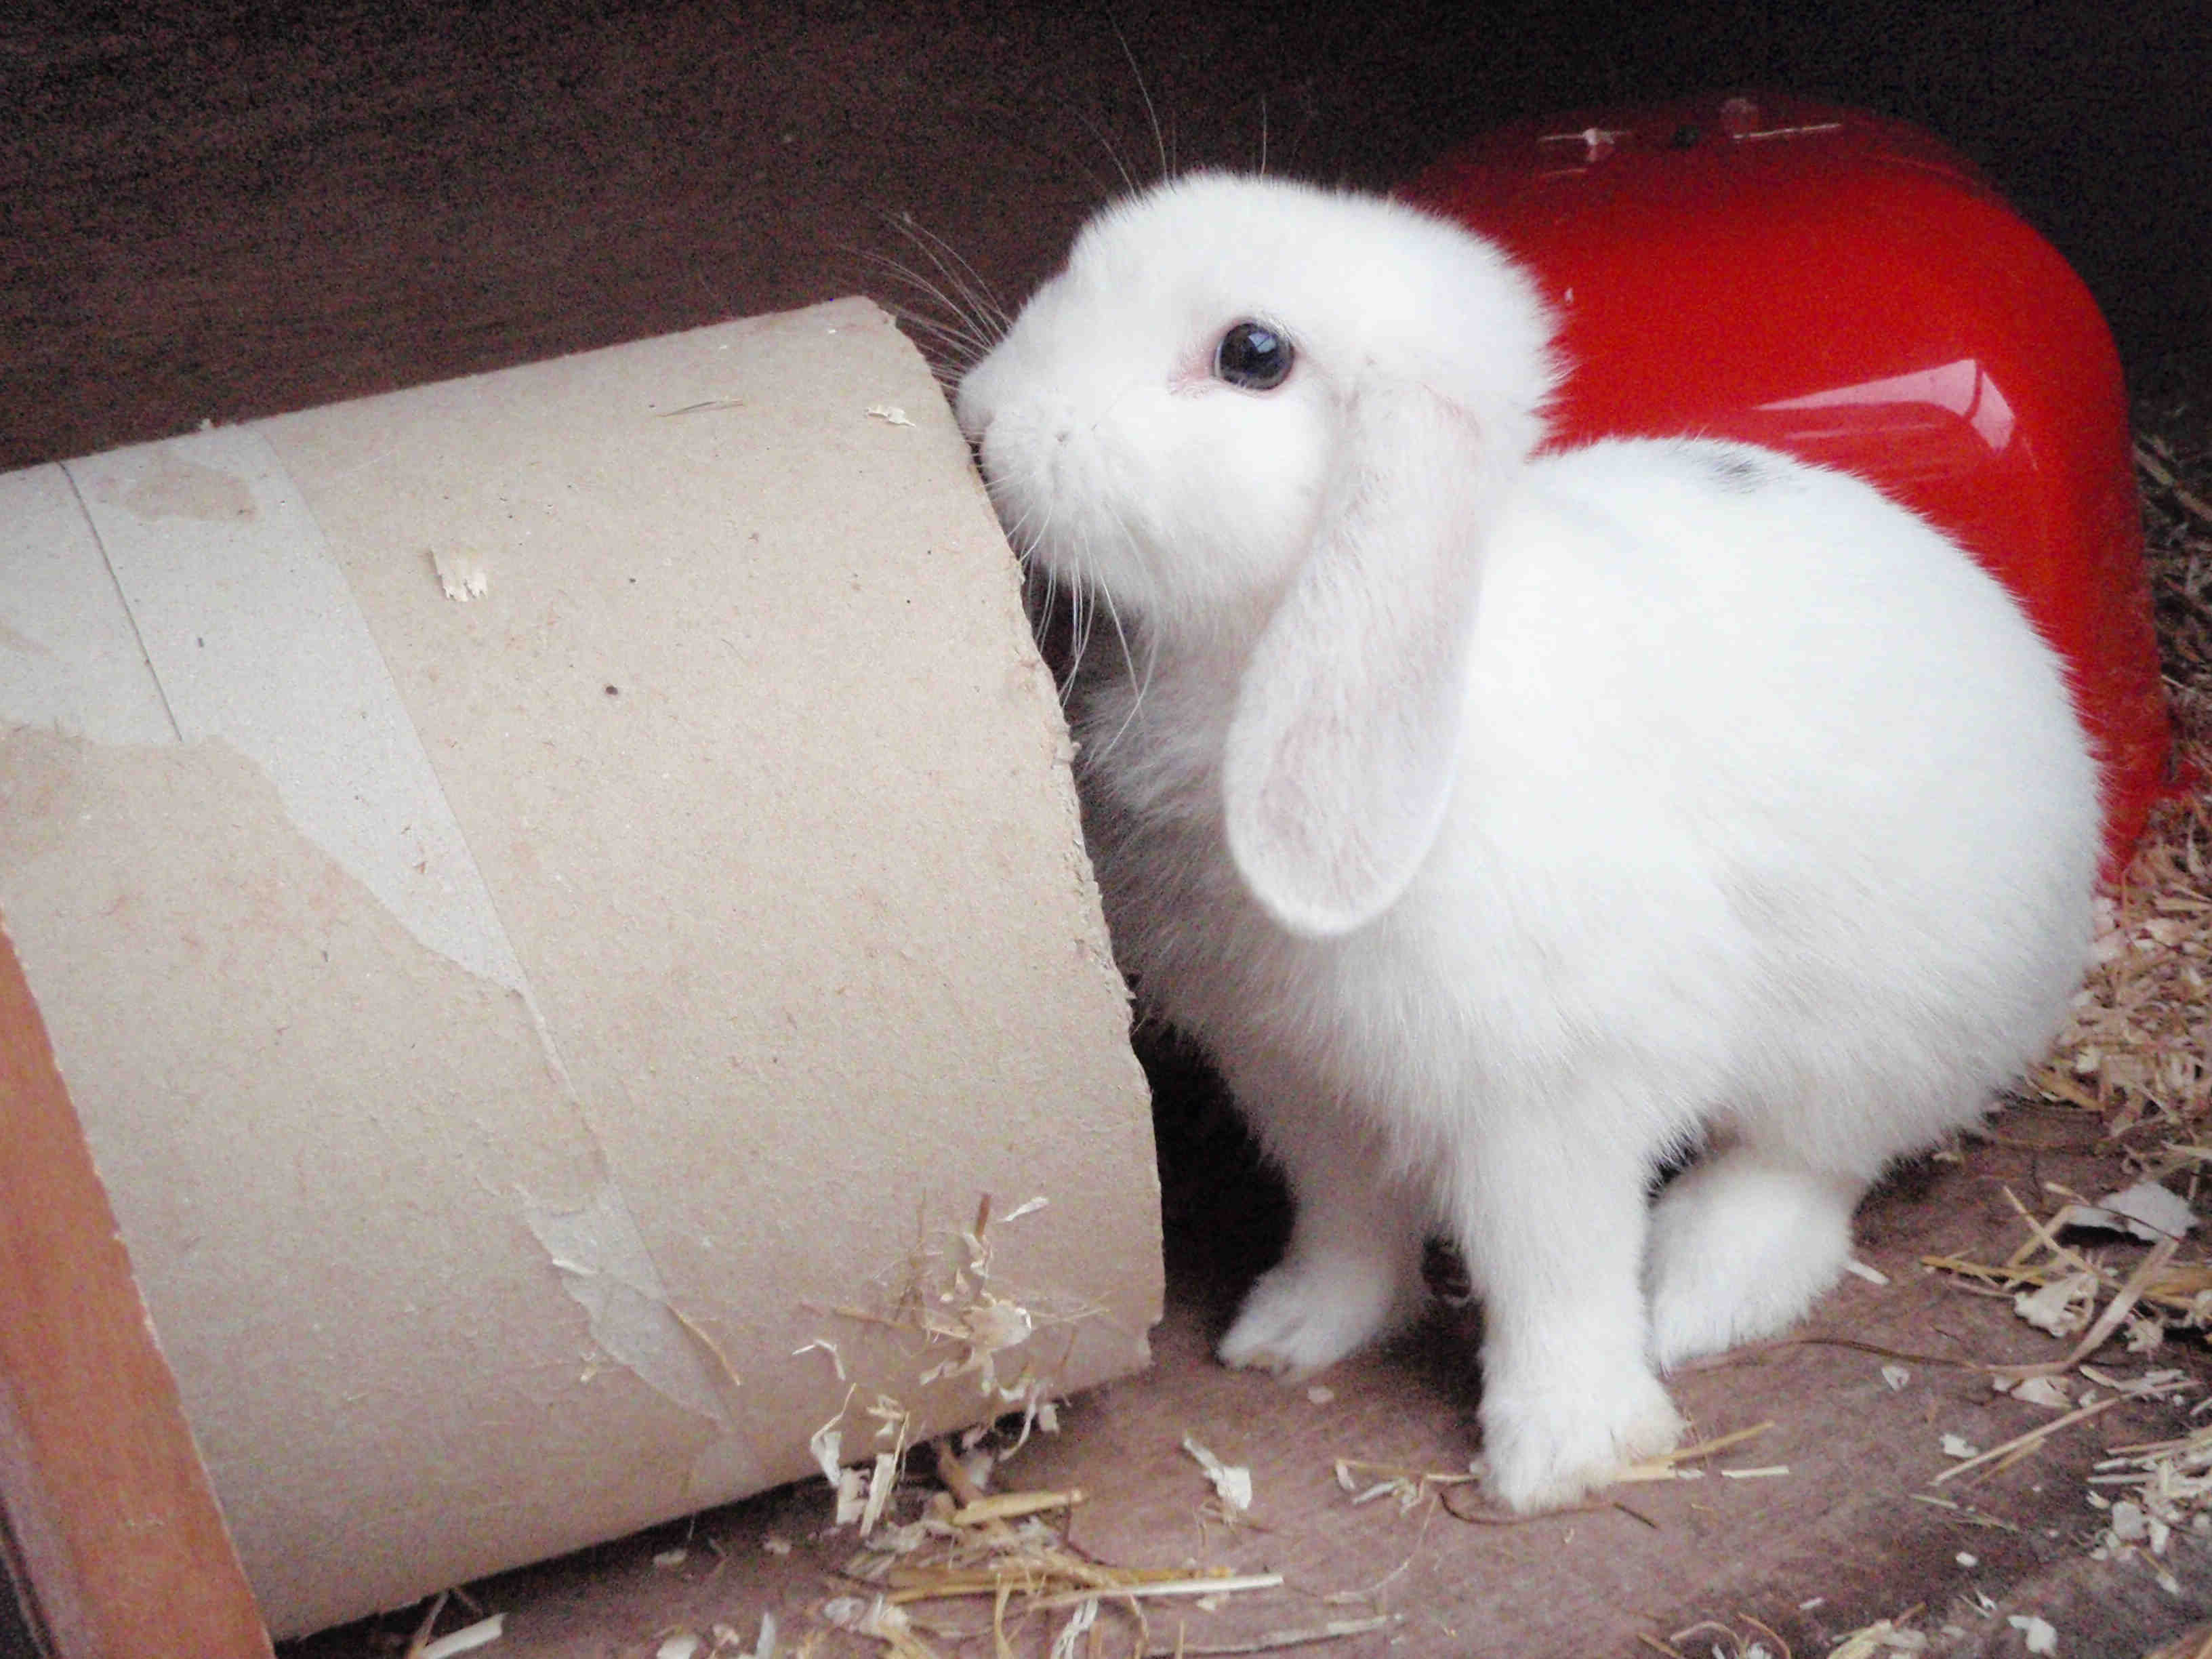 White rabbit sitting next to large cardboard tube